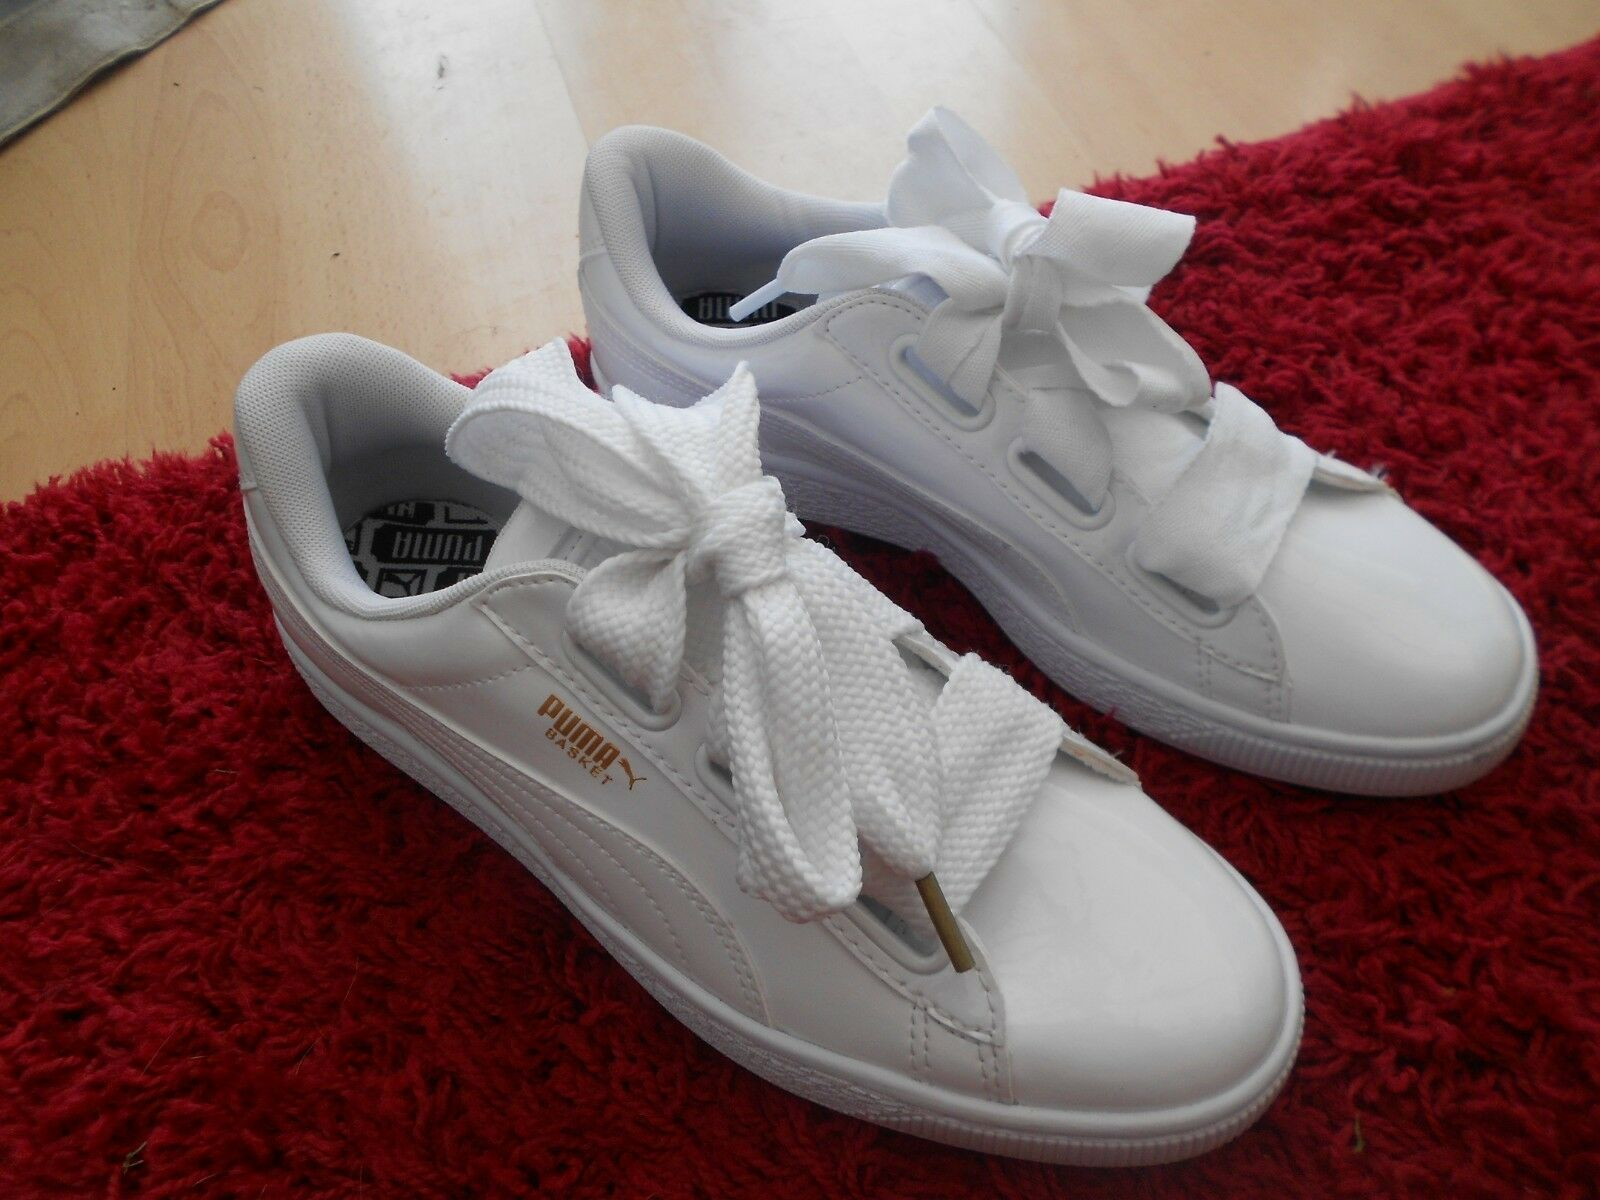 WOMENS PATENT WHITE BASKET PUMA HEART   TRAINERS UK SIZE 7.5 - WORN ONCE